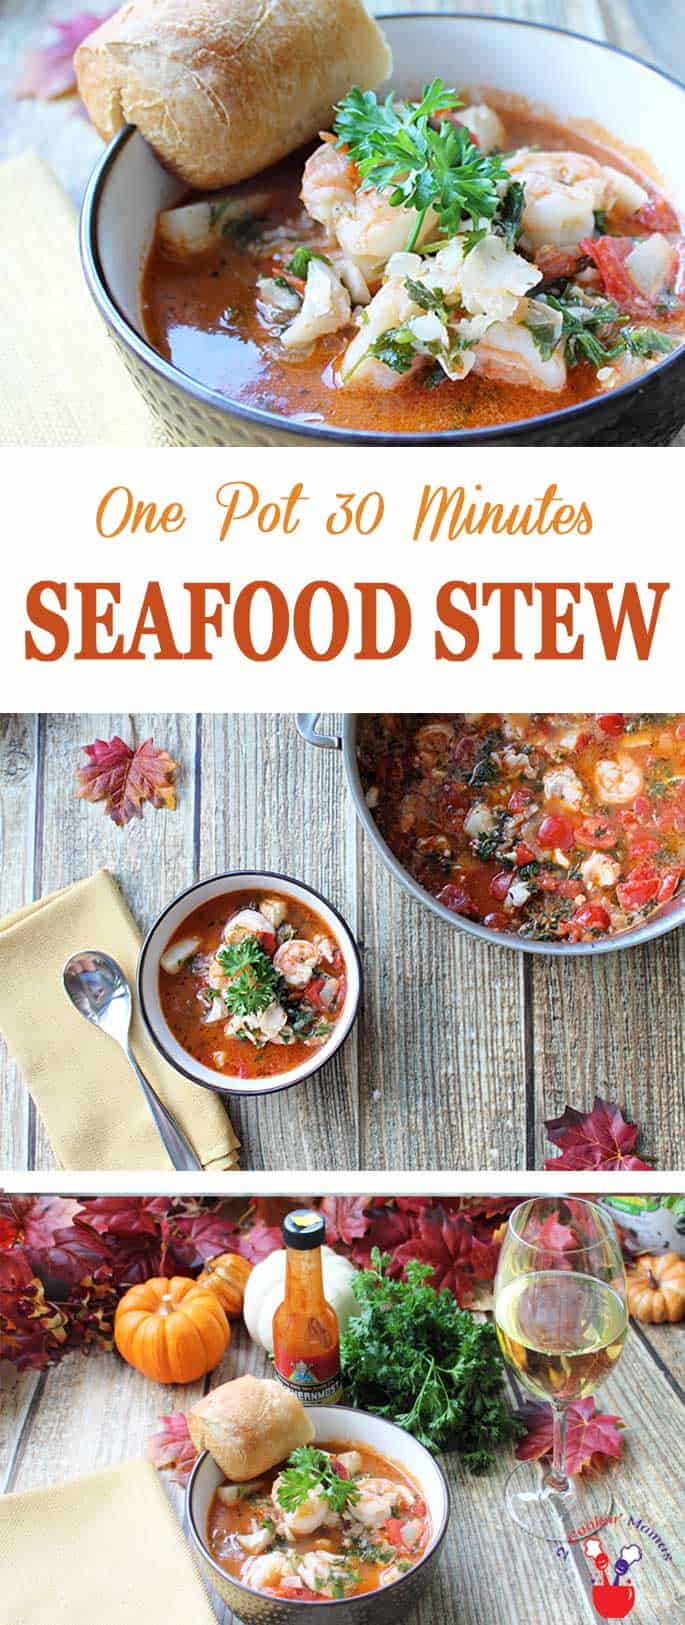 30 Minute Seafood Stew | 2 Cookin Mamas A one pot 30 minute seafood stew that's full of fish, shrimp, scallops, fresh tomatoes & spices. It's a fresh, hearty & healthy dinner for busy weeknights. #recipe #dinner #seafood #stew